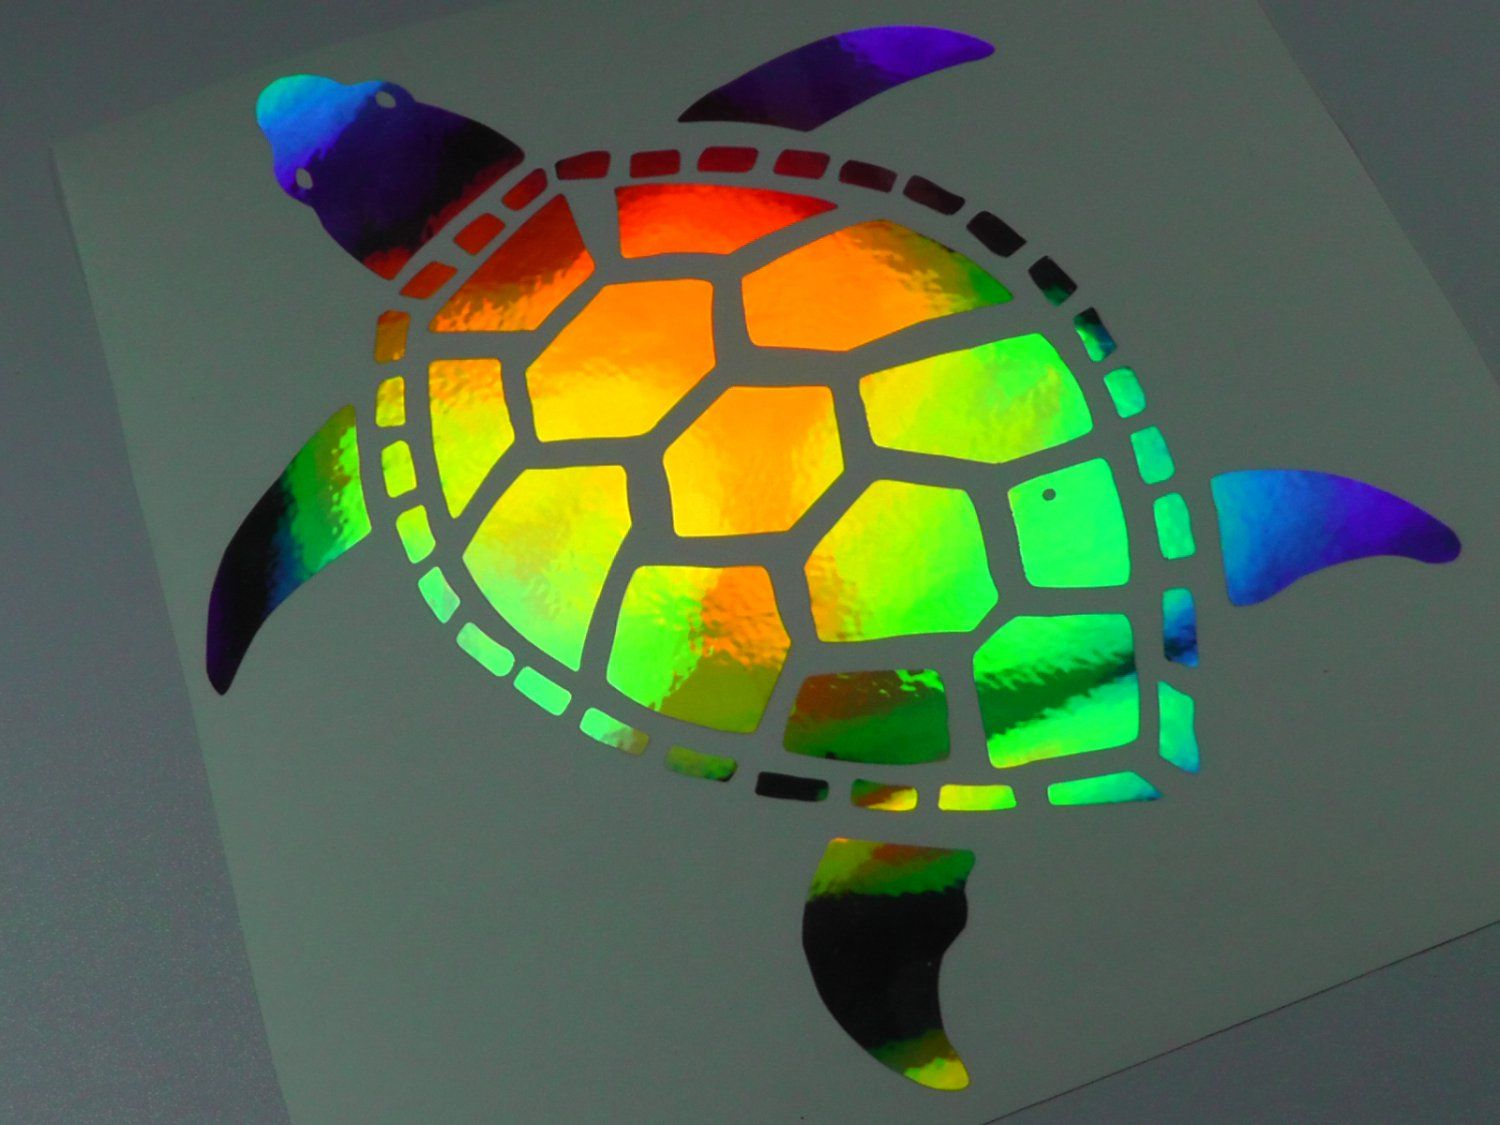 10 Holographic Turtle Car Window Decal Sticker Terrapin Tortoise Turtles Turtle Car Car Window Decals Turtle [ 1125 x 1500 Pixel ]